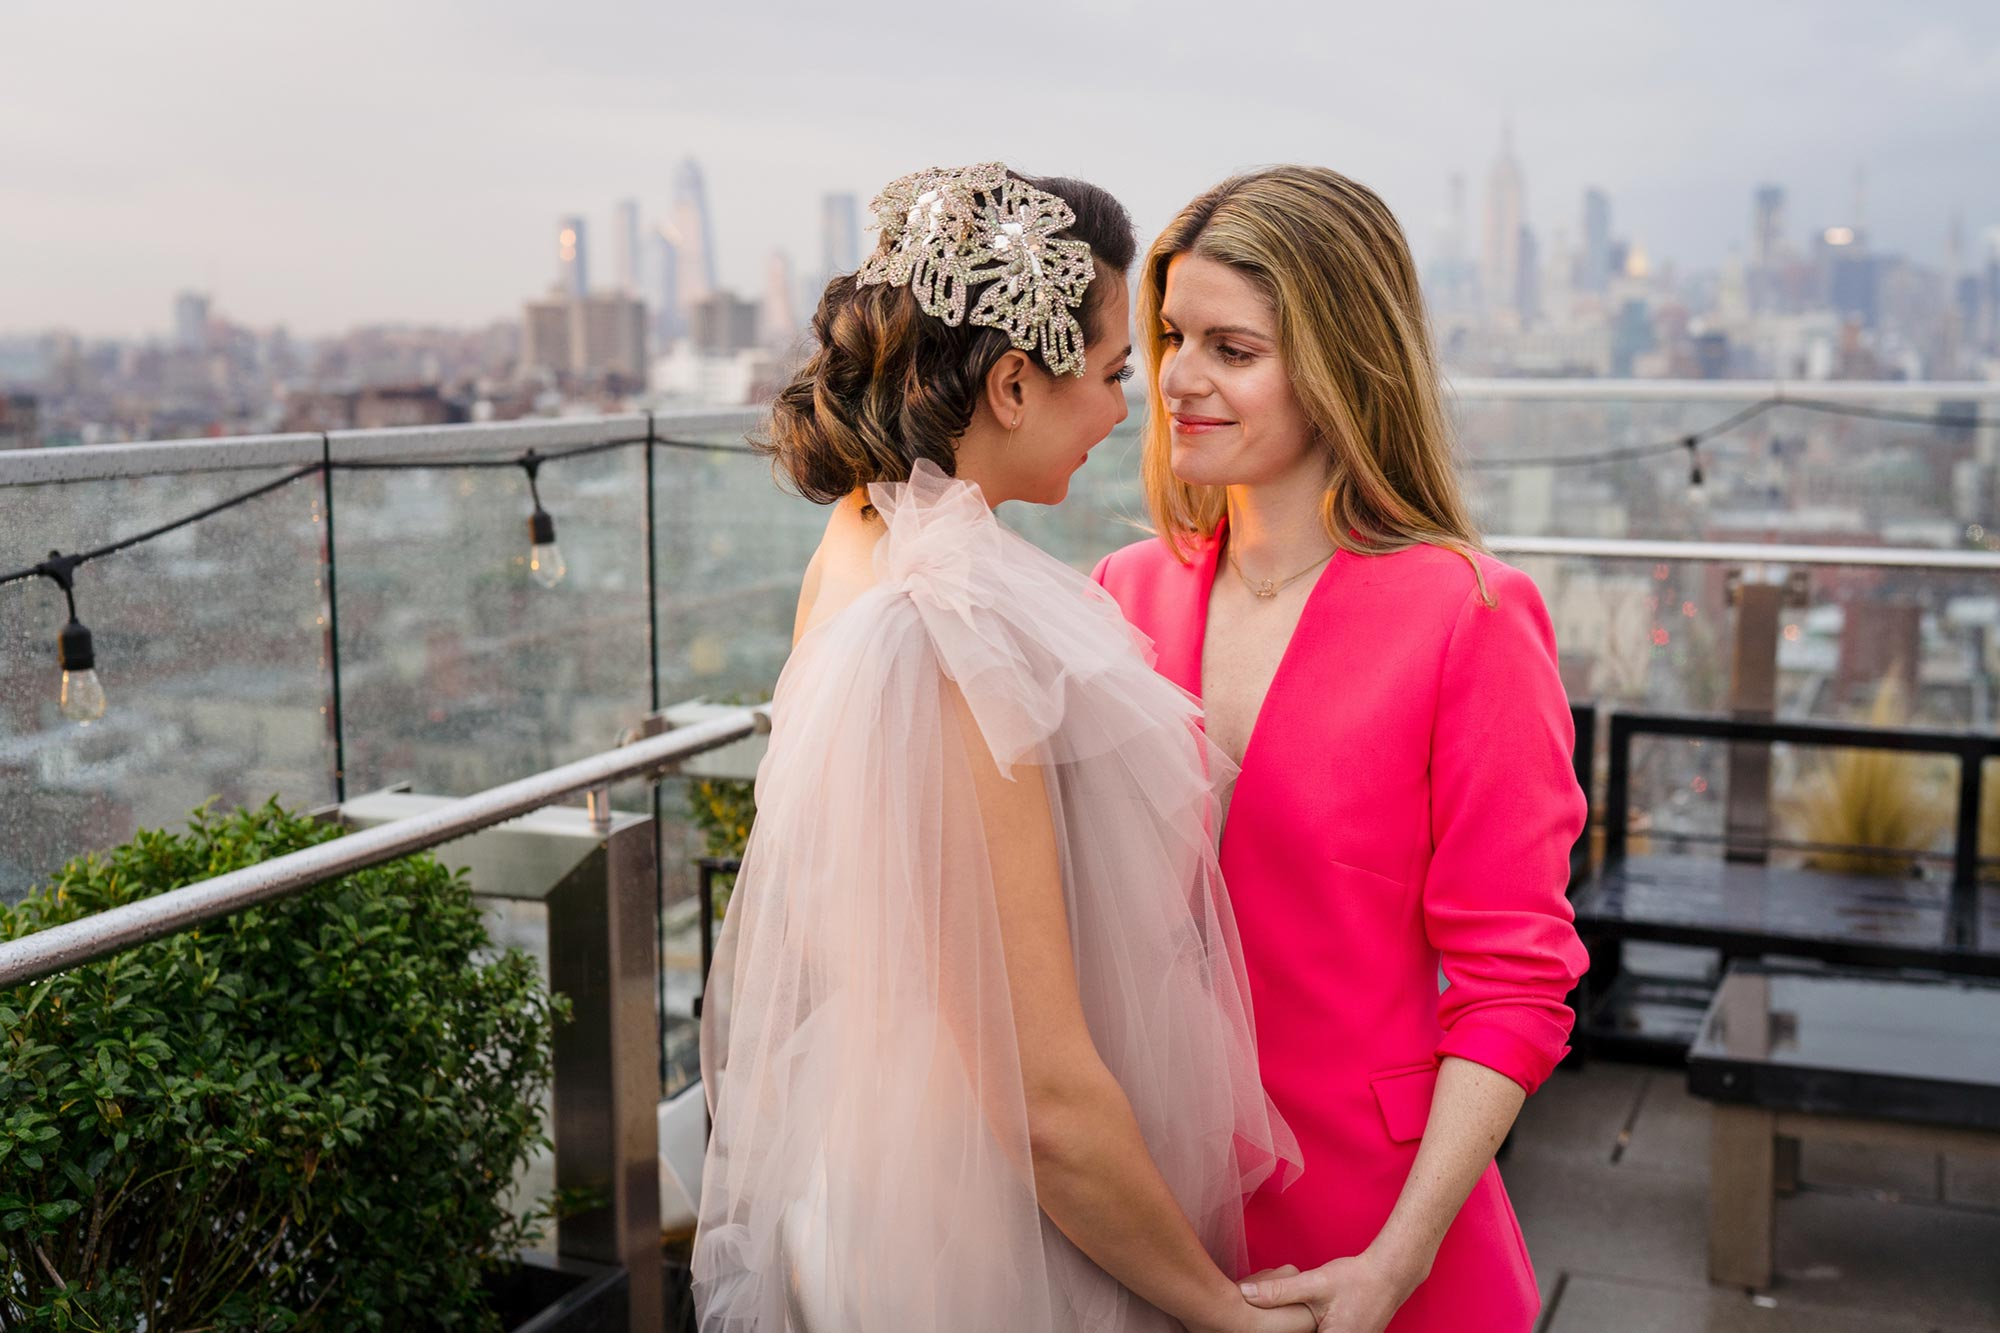 Bright Neon Wedding Inspiration at The Bowery Hotel NYC showing couple on rooftop with city in background JC Lemon Photography